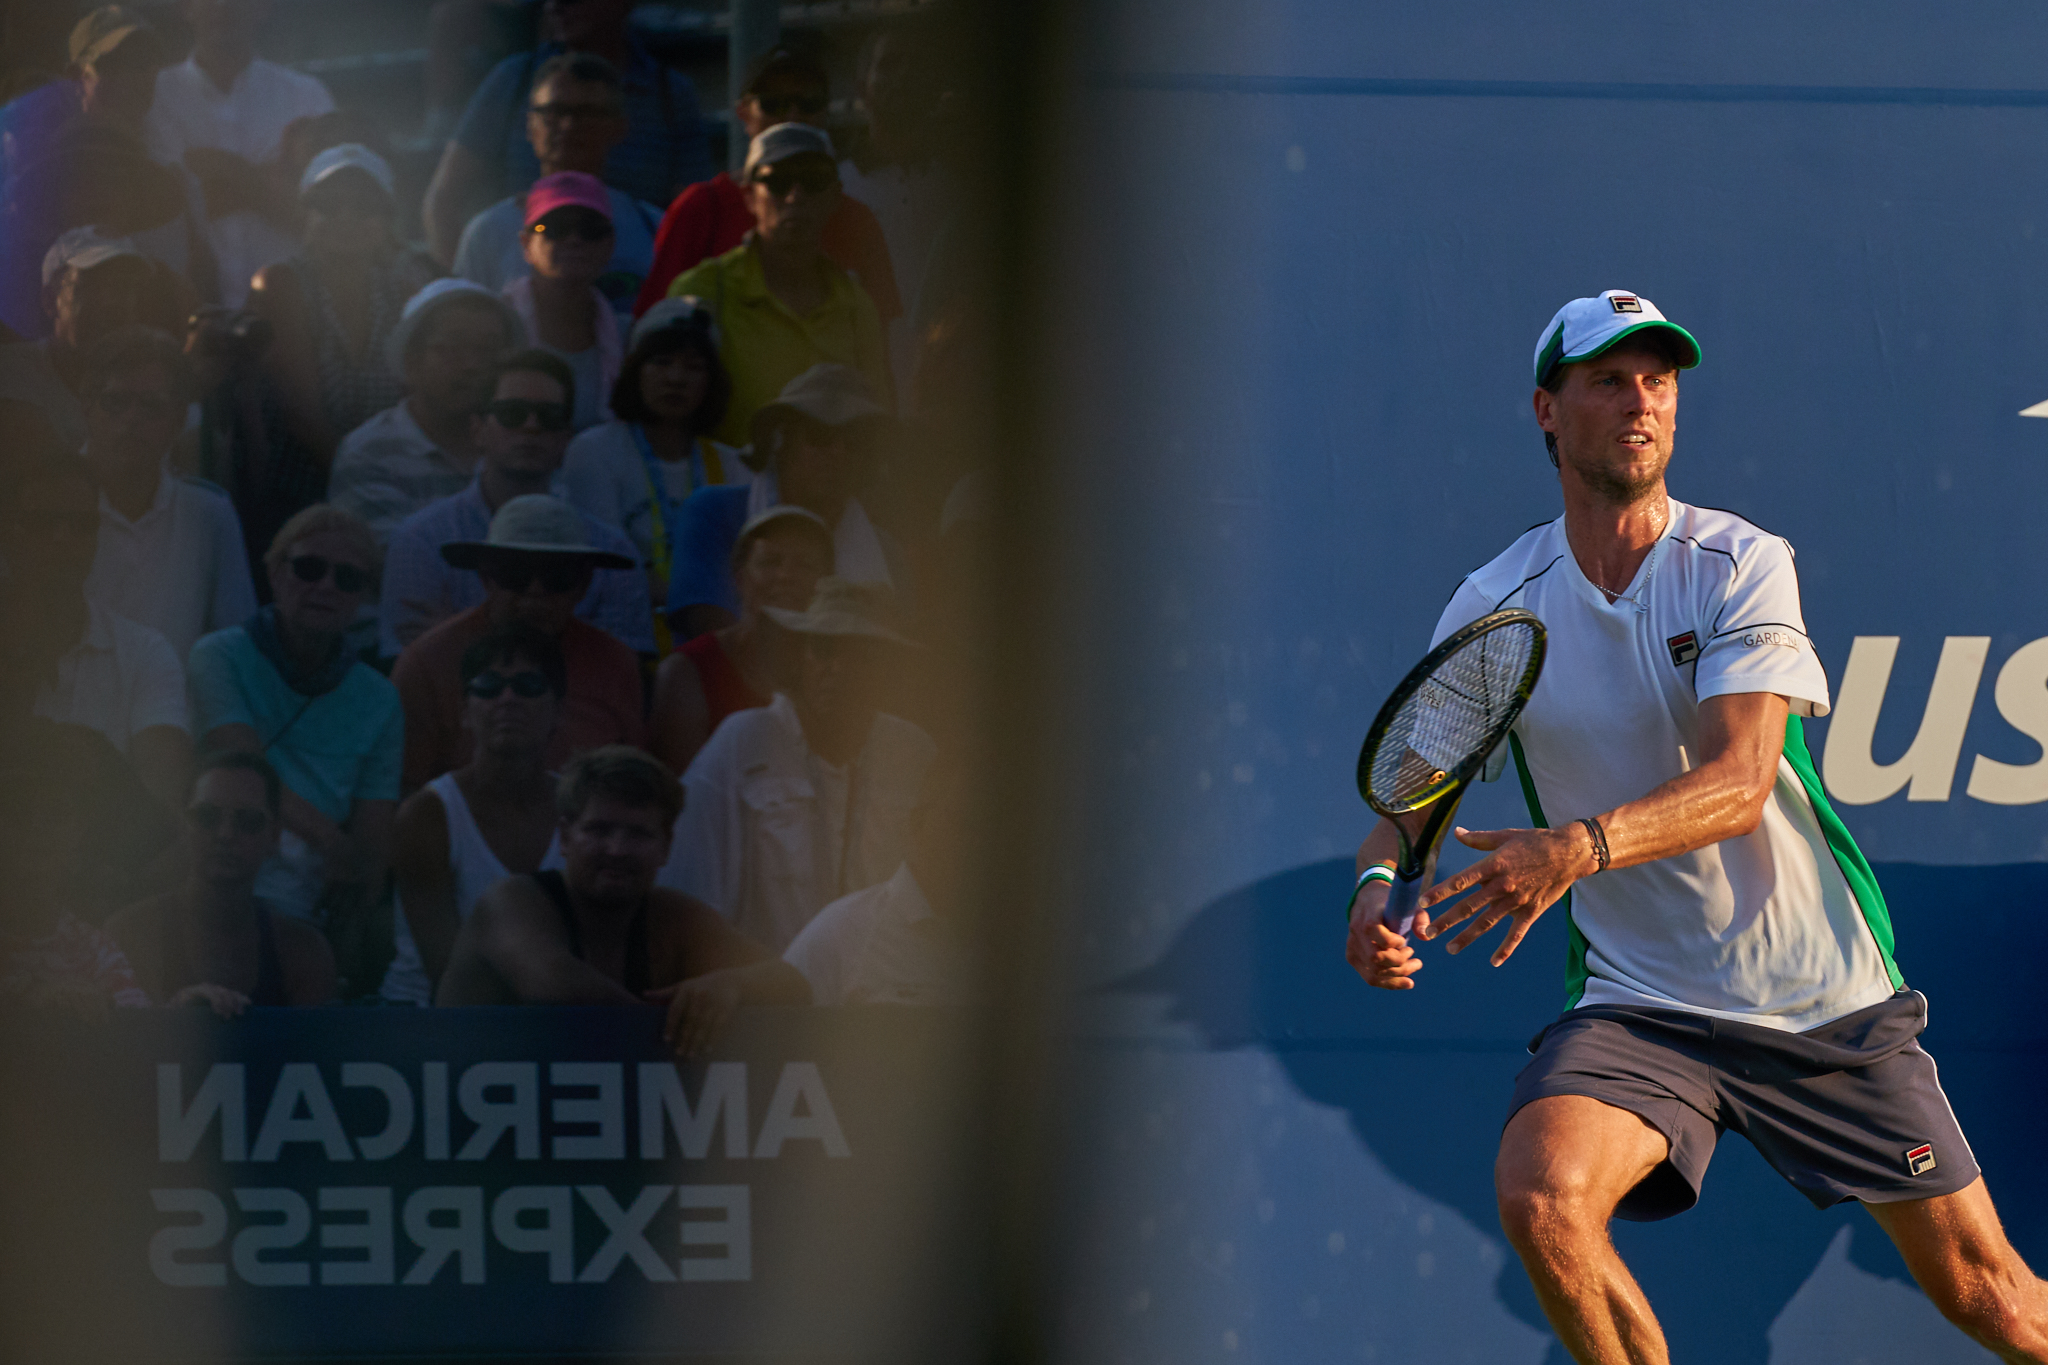 Andreas Seppi, Court 5, 2nd round Men's Singles  Sony A9, Sony 70-200mm f2.8 GM-OSS